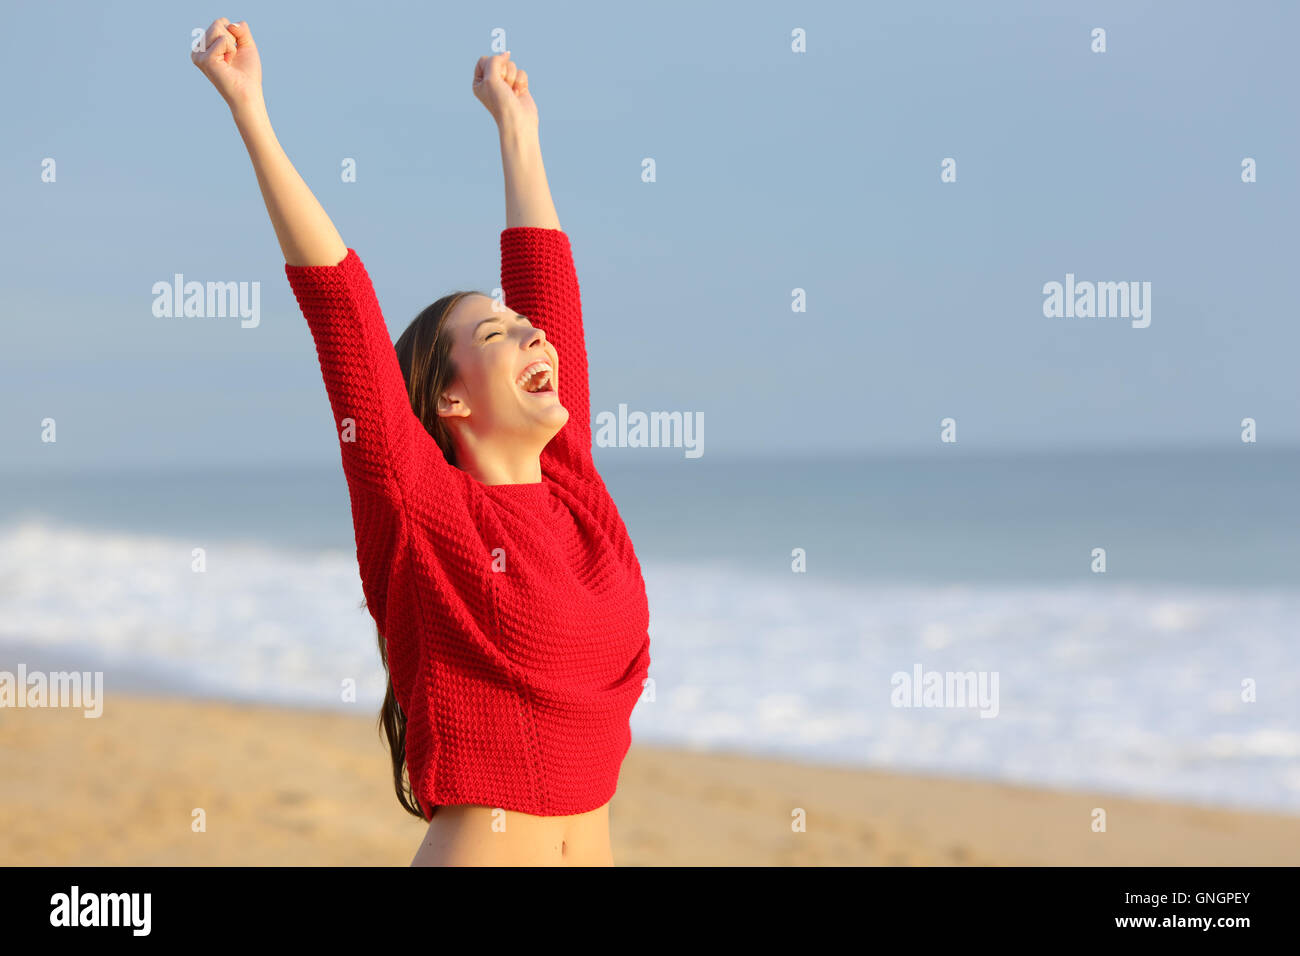 Happy funny excited woman wearing red color sweater raising arms euphoric on the beach at sunset with a warm light - Stock Image